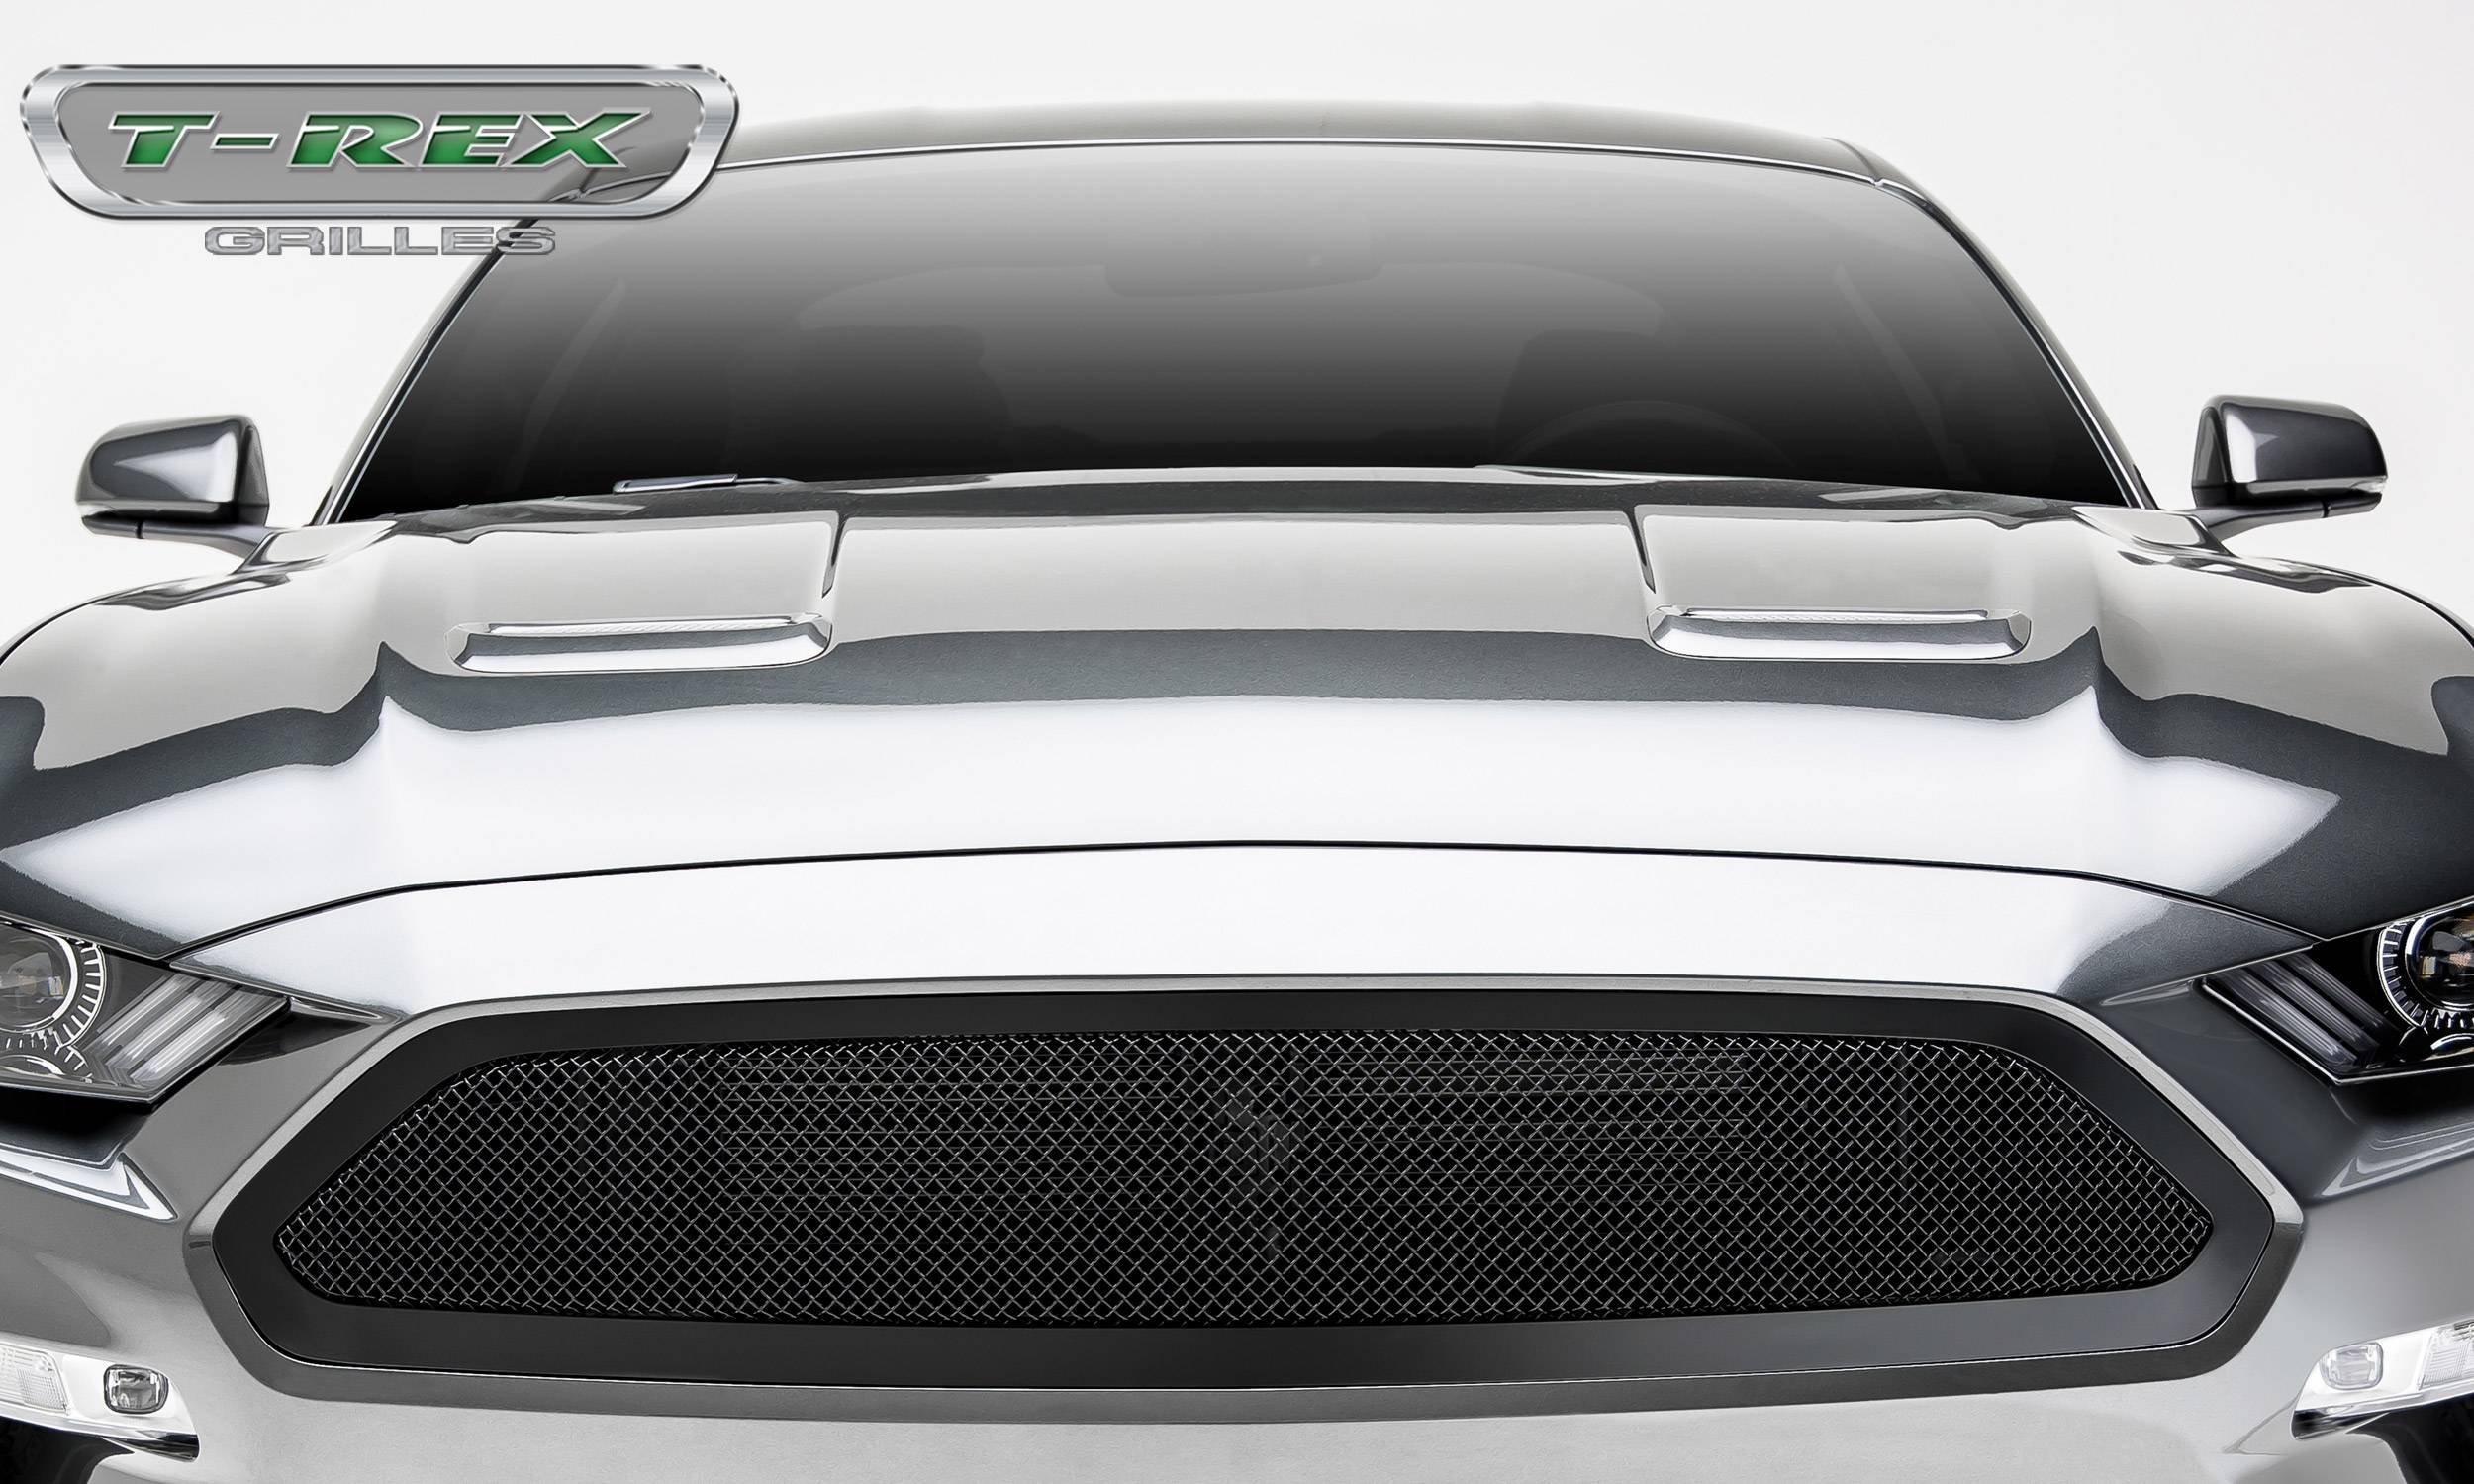 T-REX Grilles - Mustang GT - Upper Class Series - Main Grille, Insert Black Powder Coated Finish  #51550